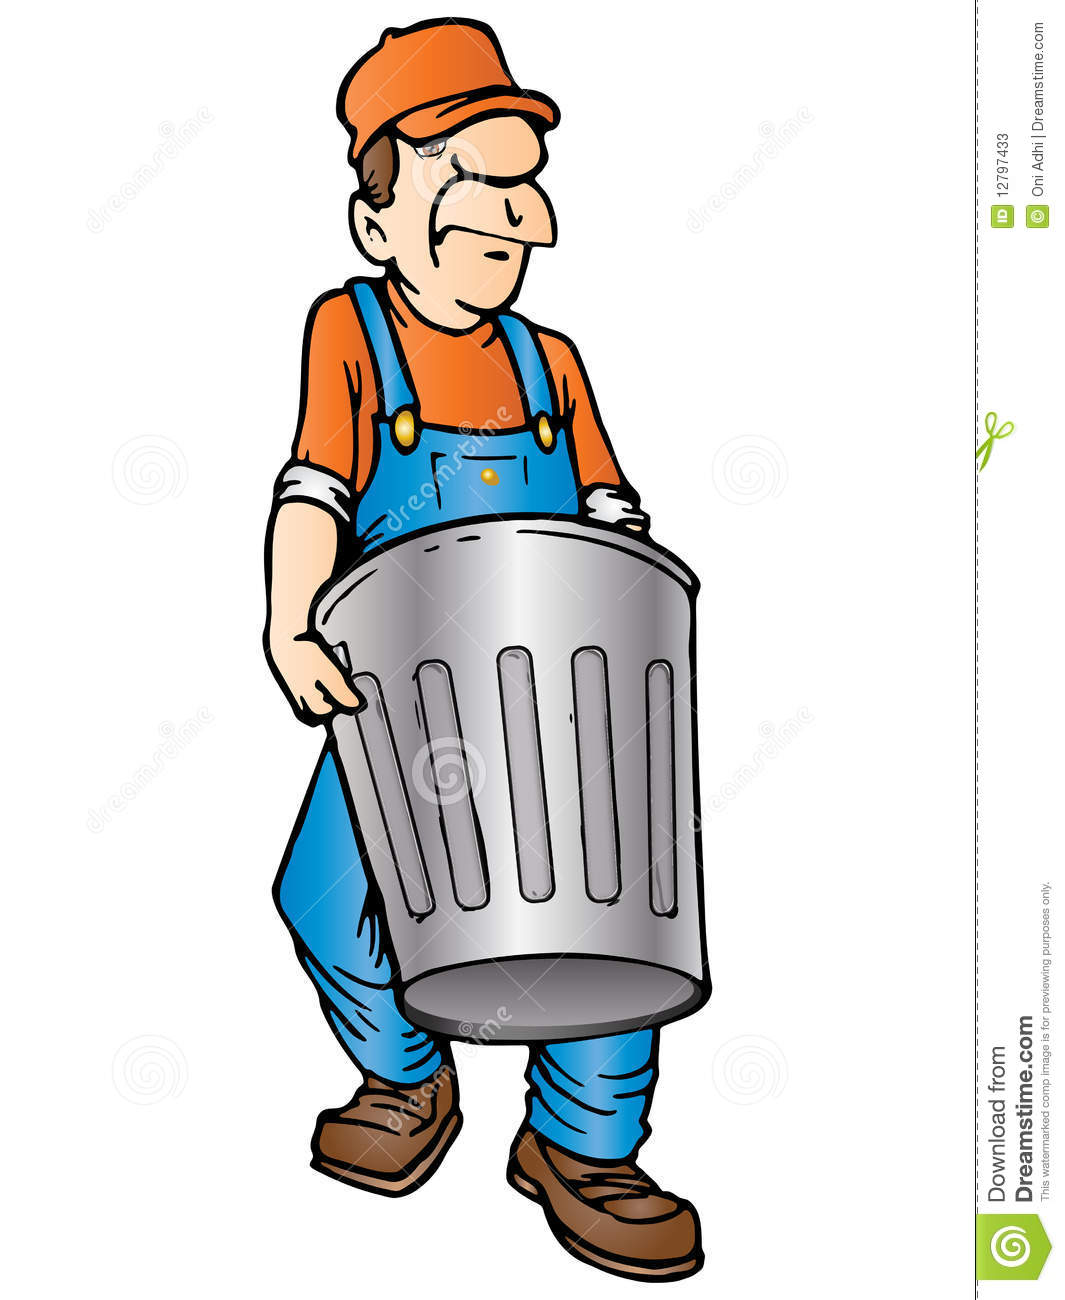 Trash collector clipart.